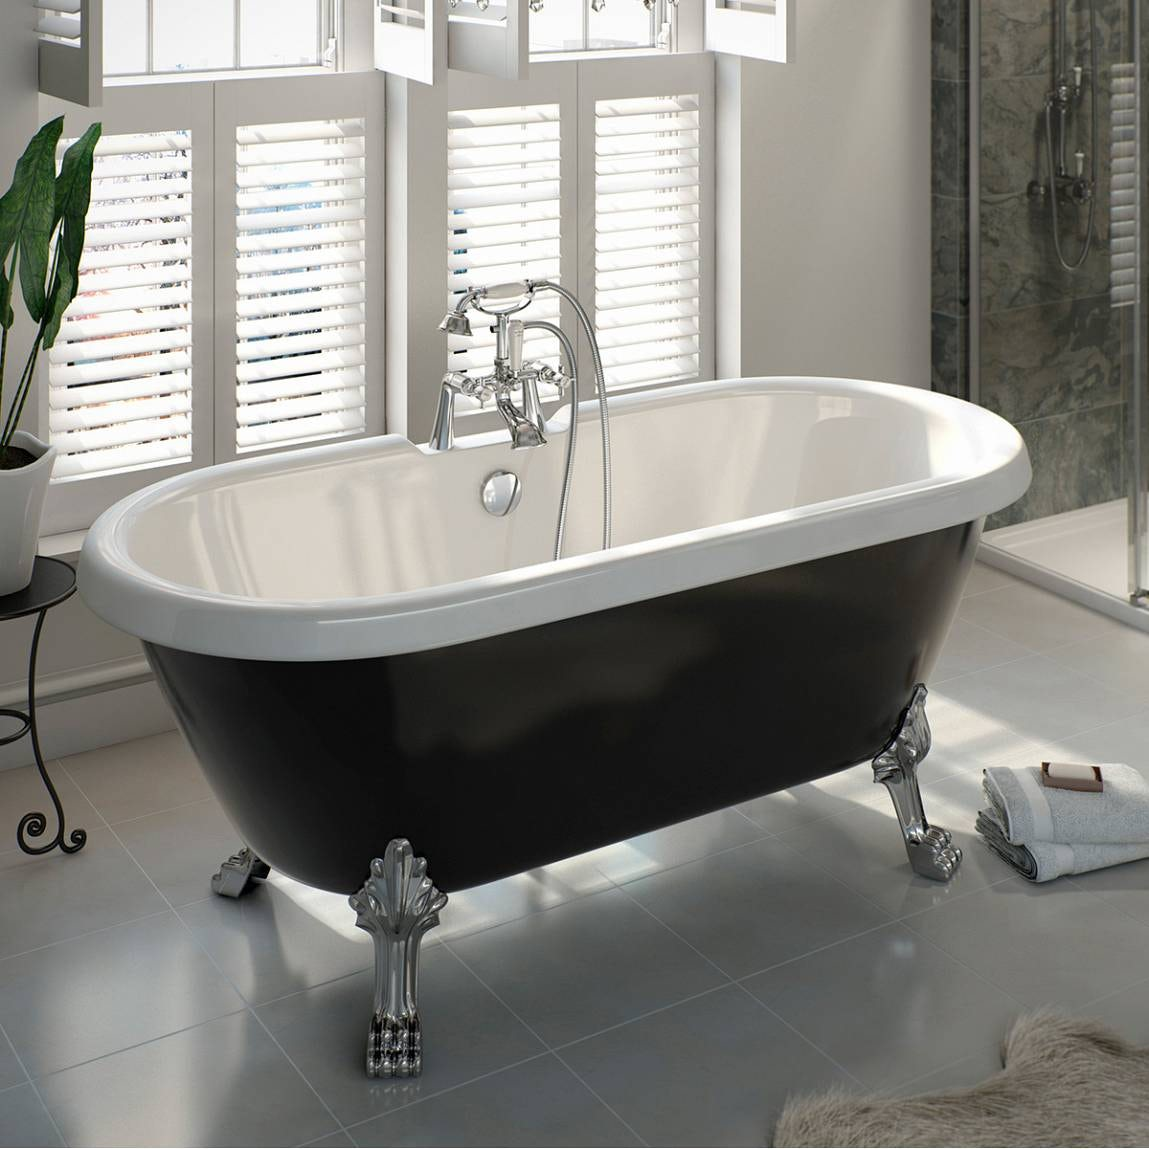 The bath co shakespeare traditional roll top bath with for Roll top bathroom ideas